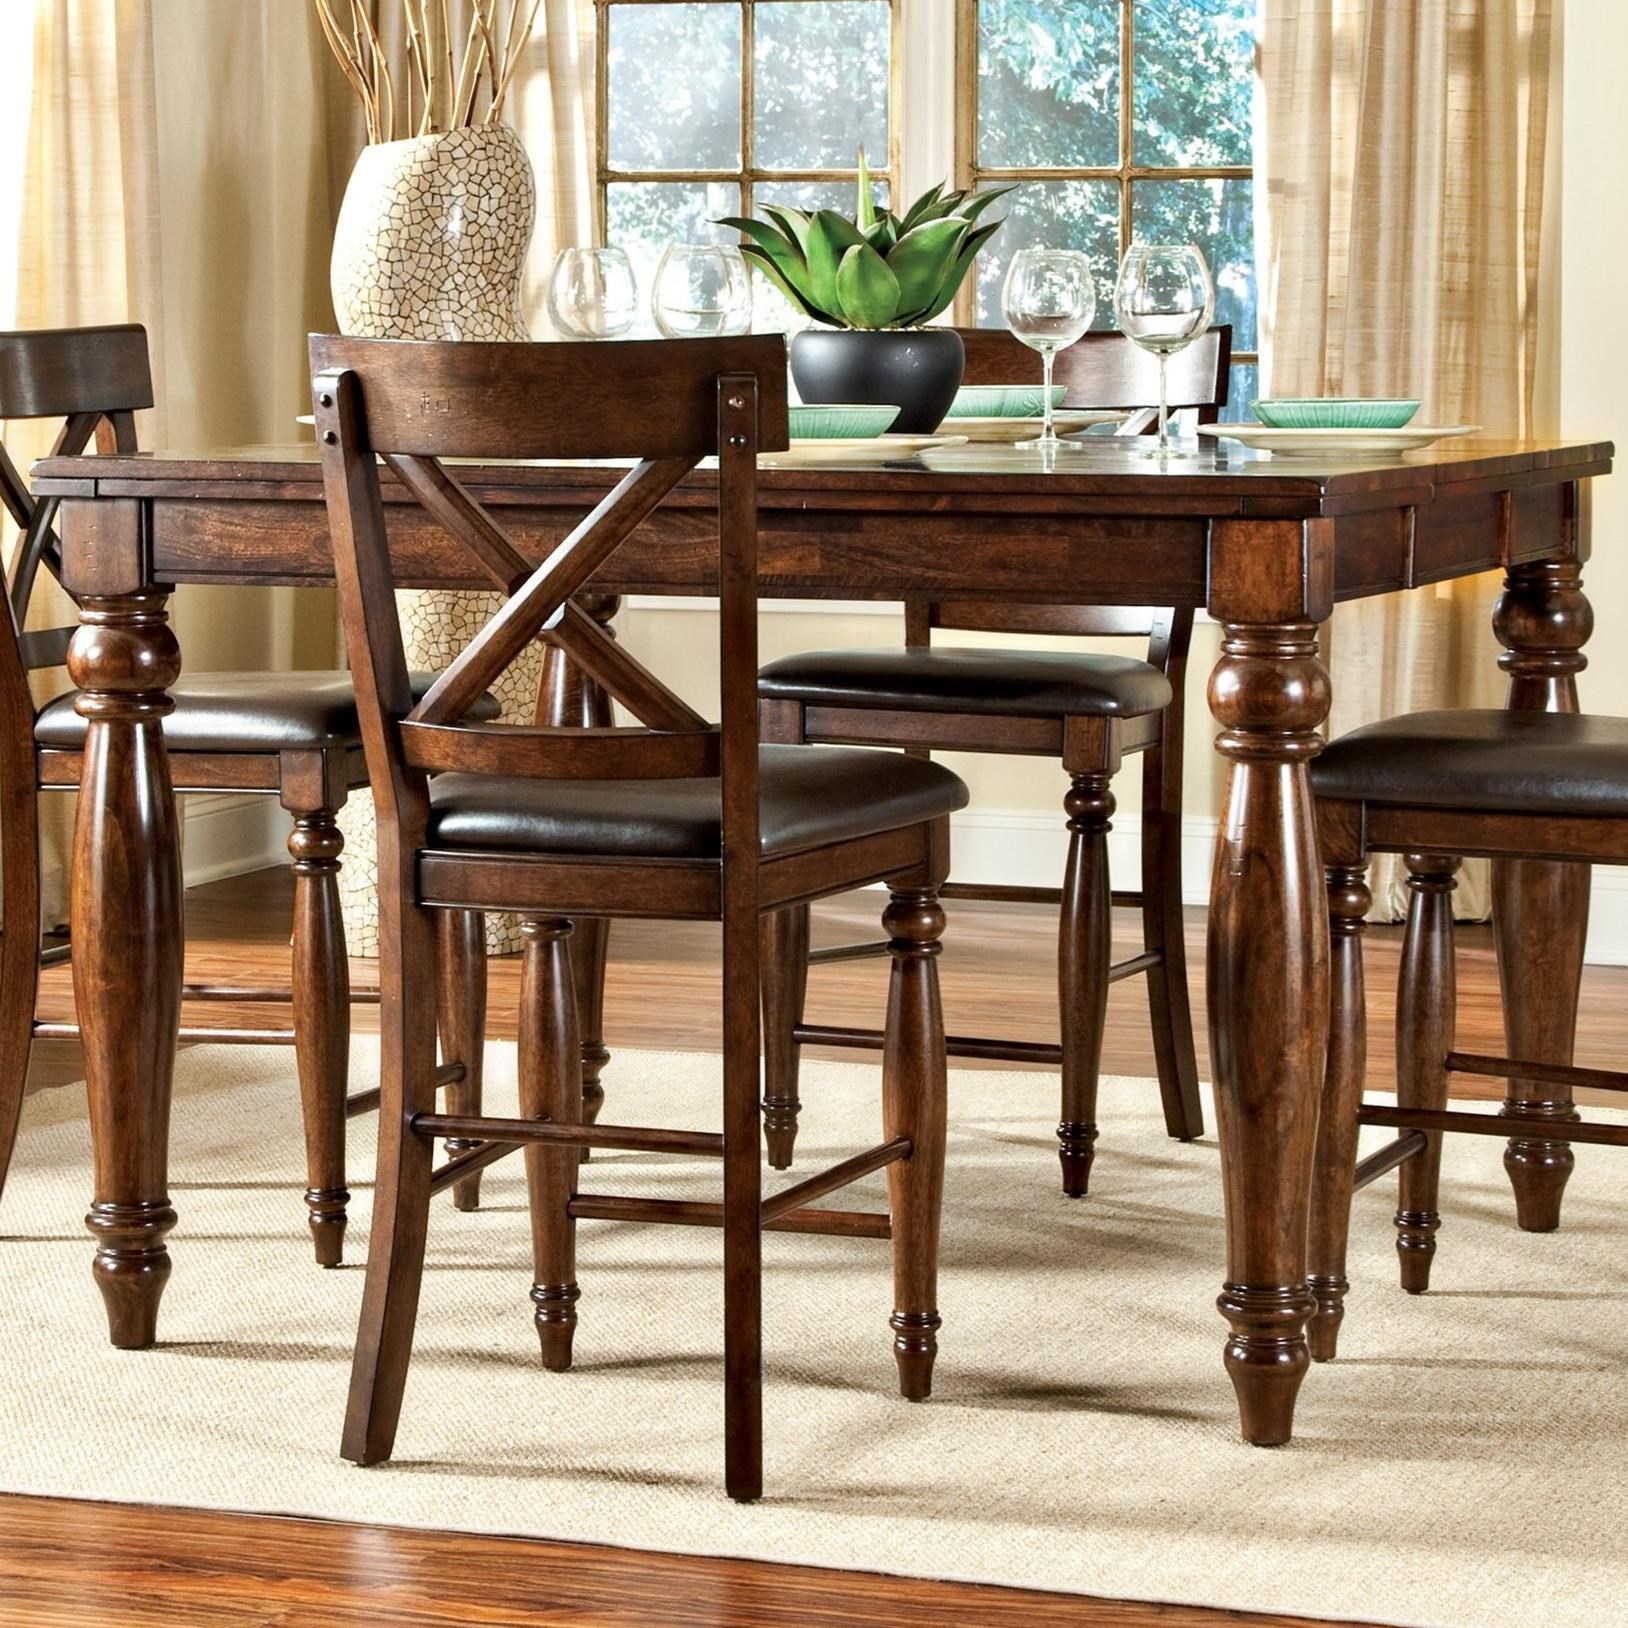 Kingston  Gathering Table by Intercon at Rooms for Less